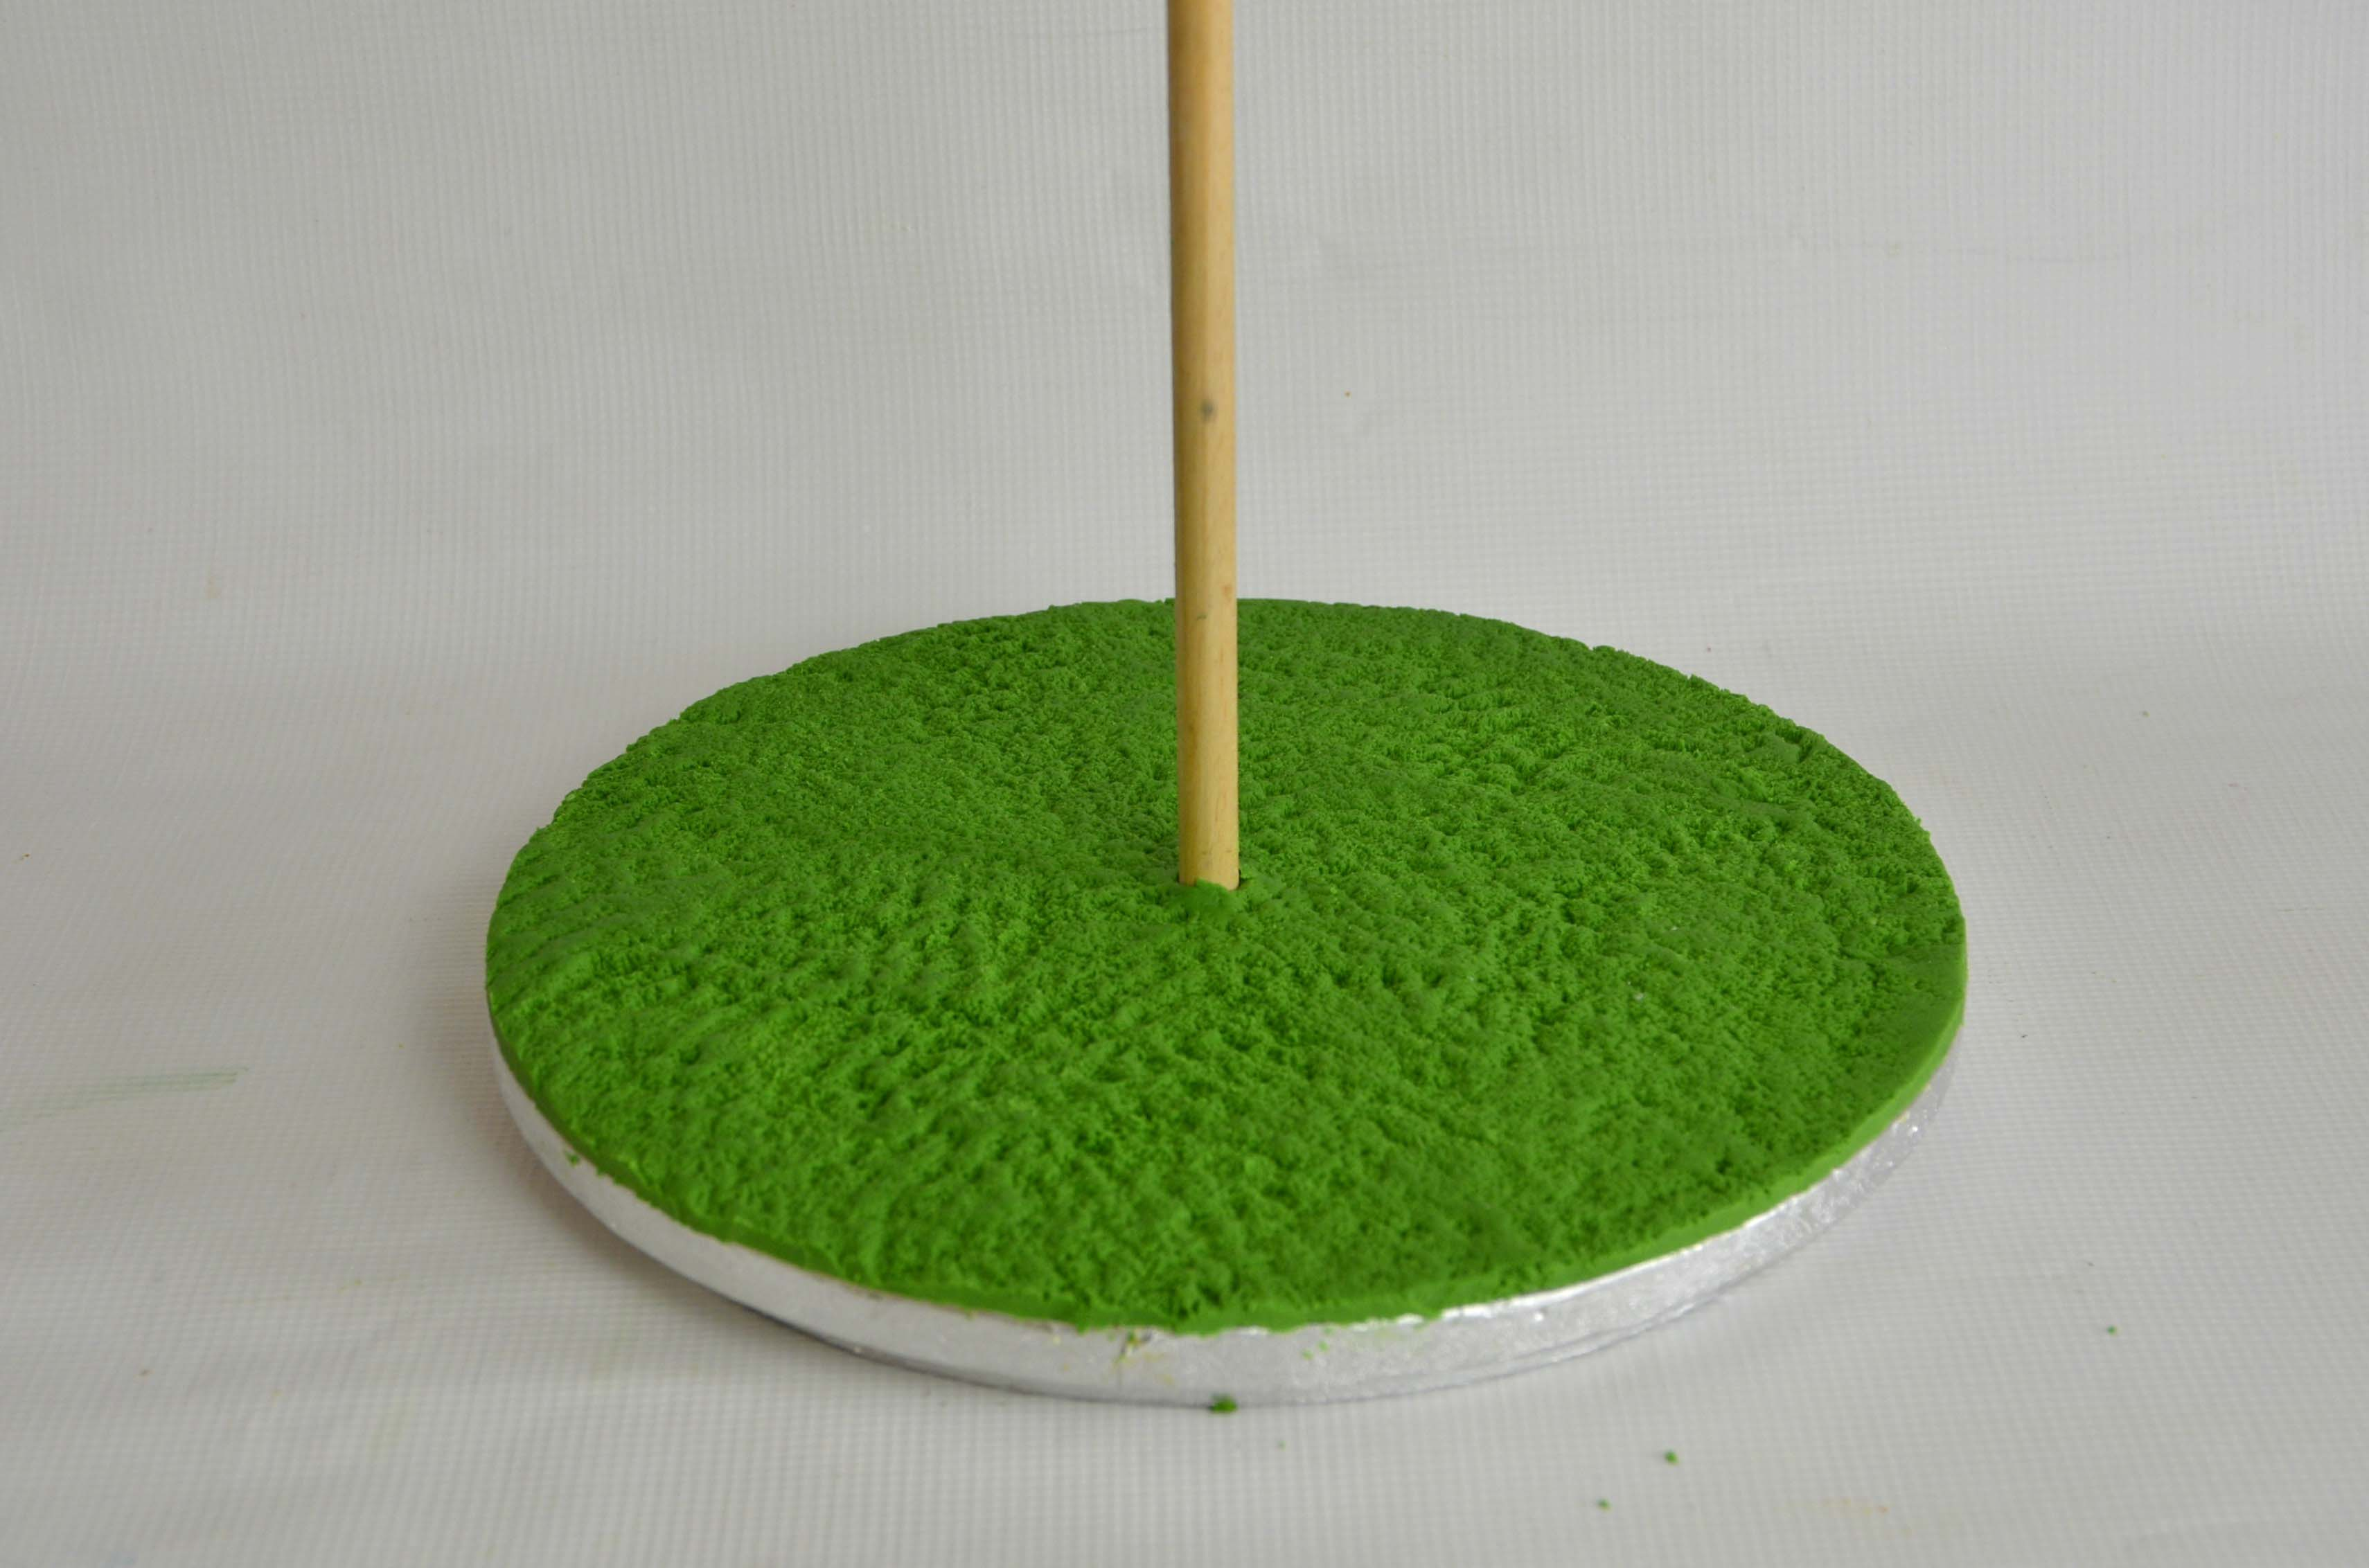 Brushed green sugarpaste